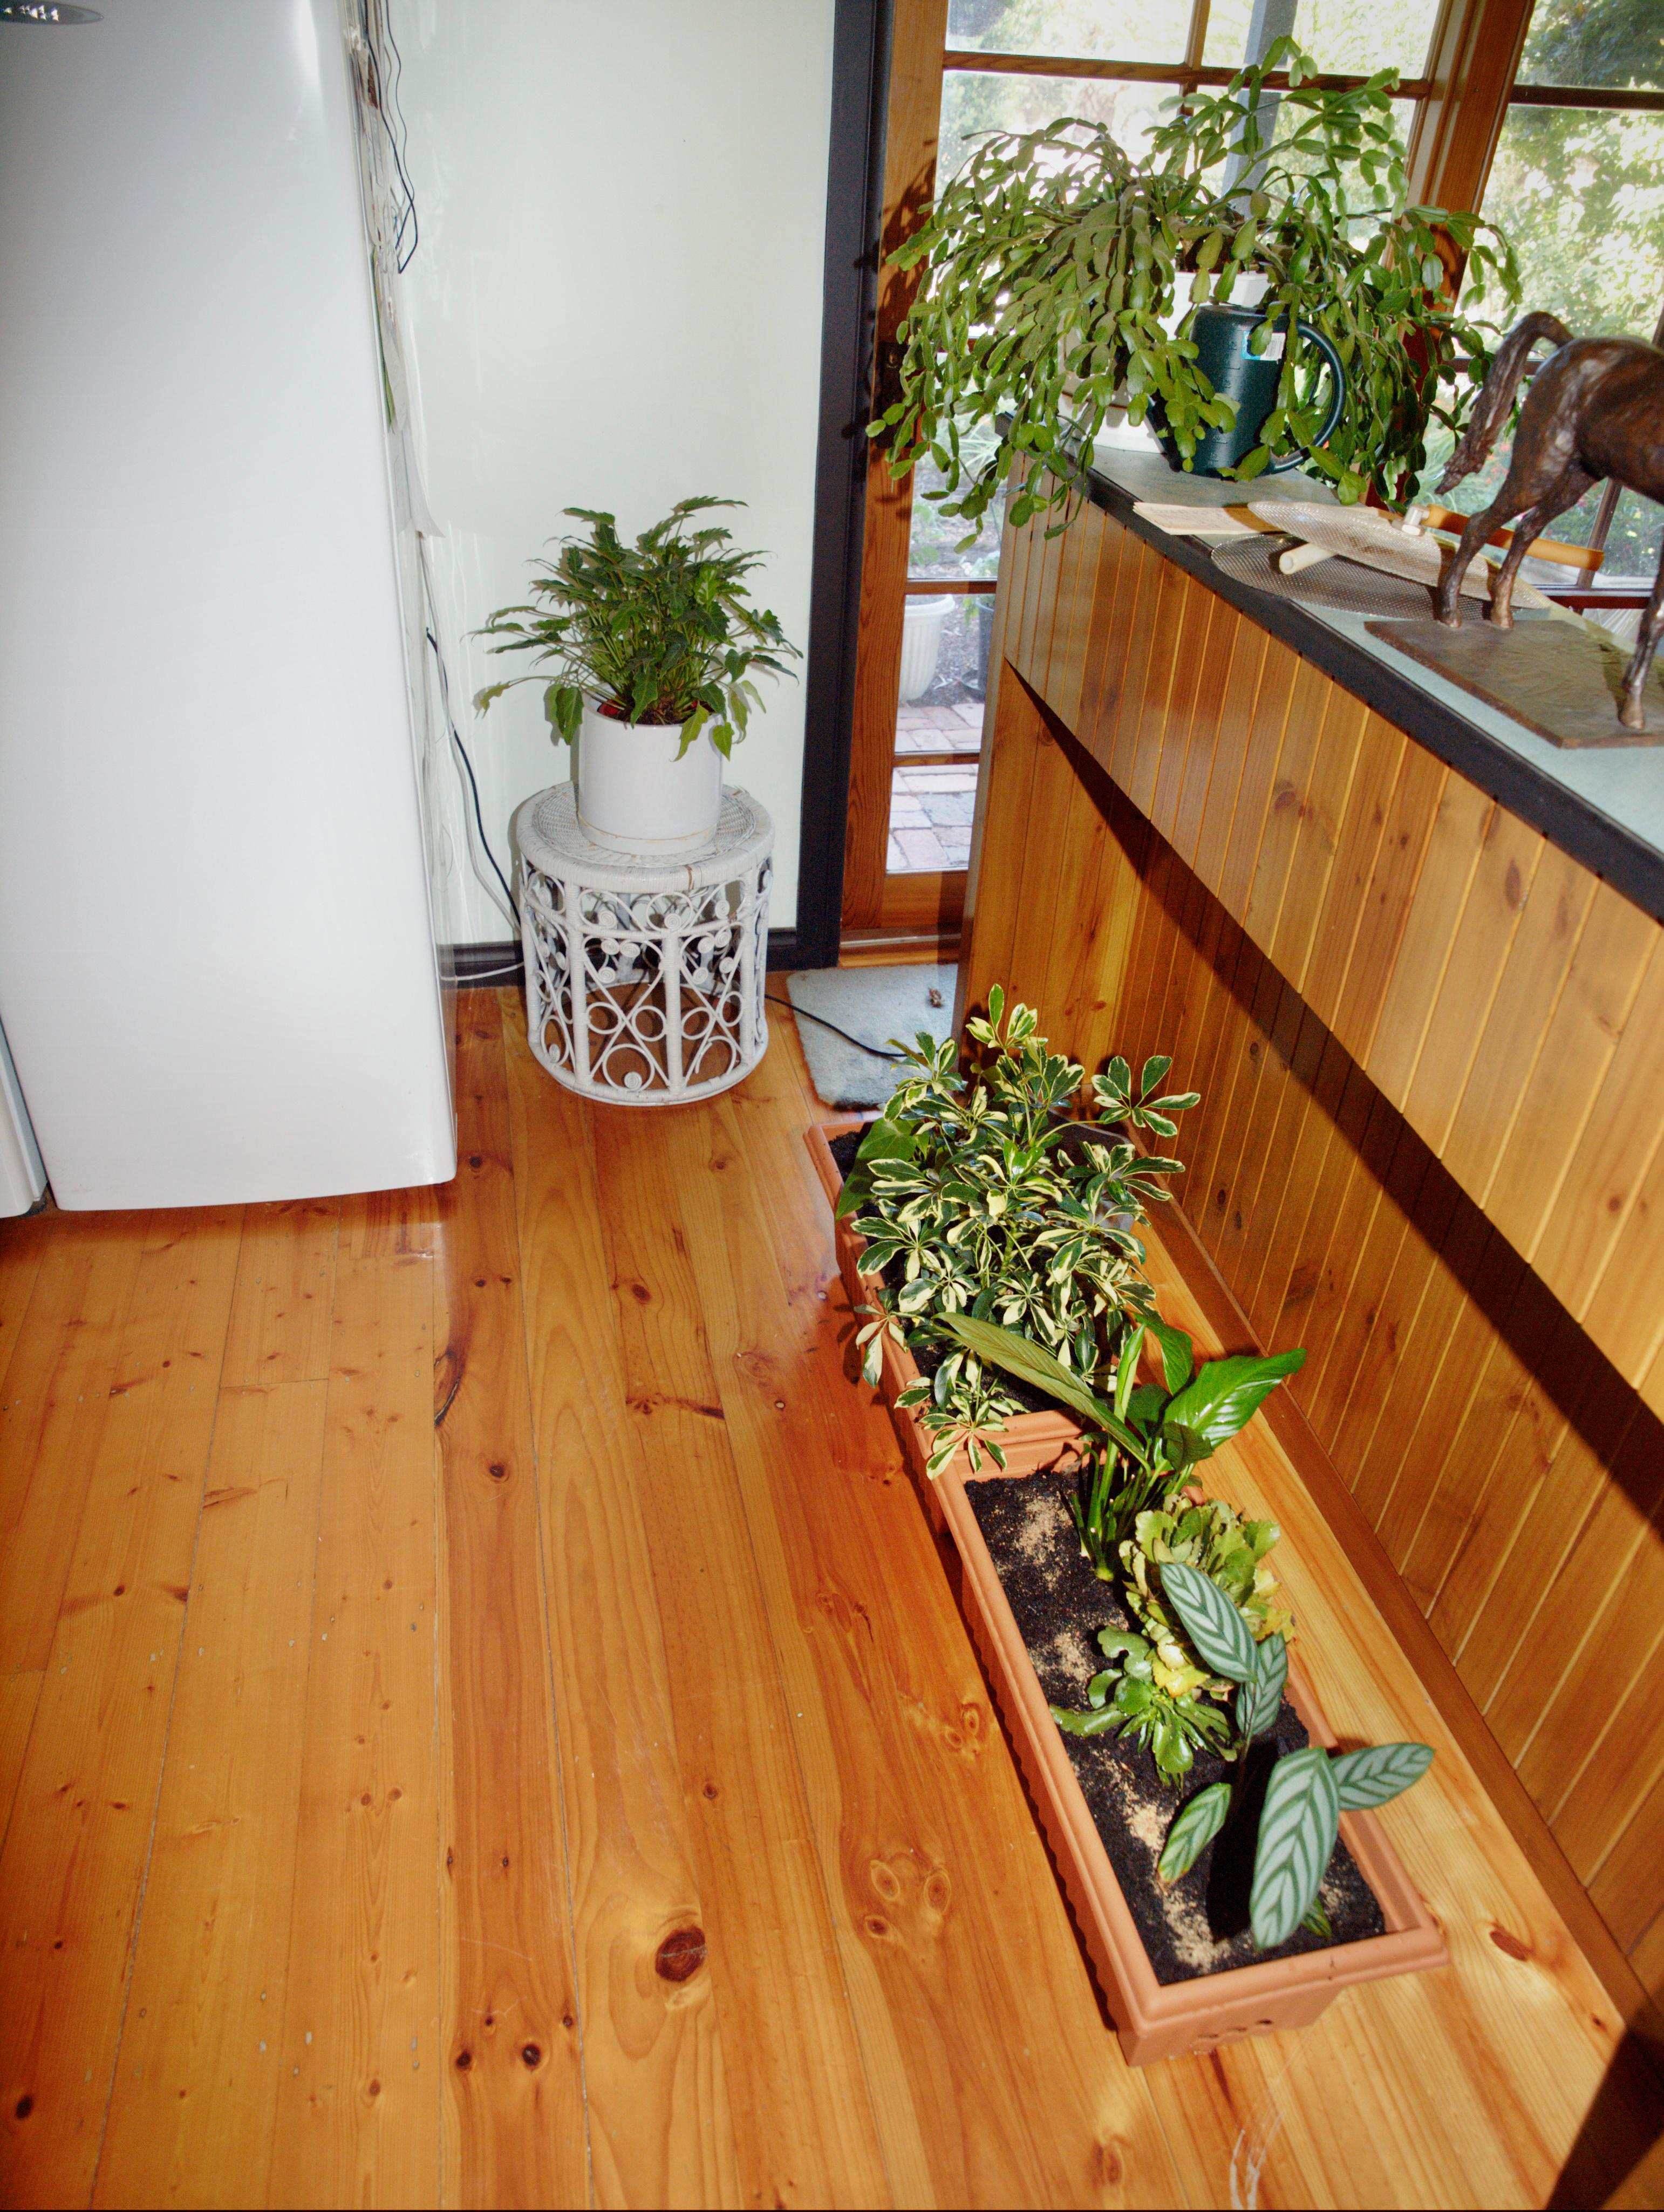 Kitchen-plants-2.jpeg